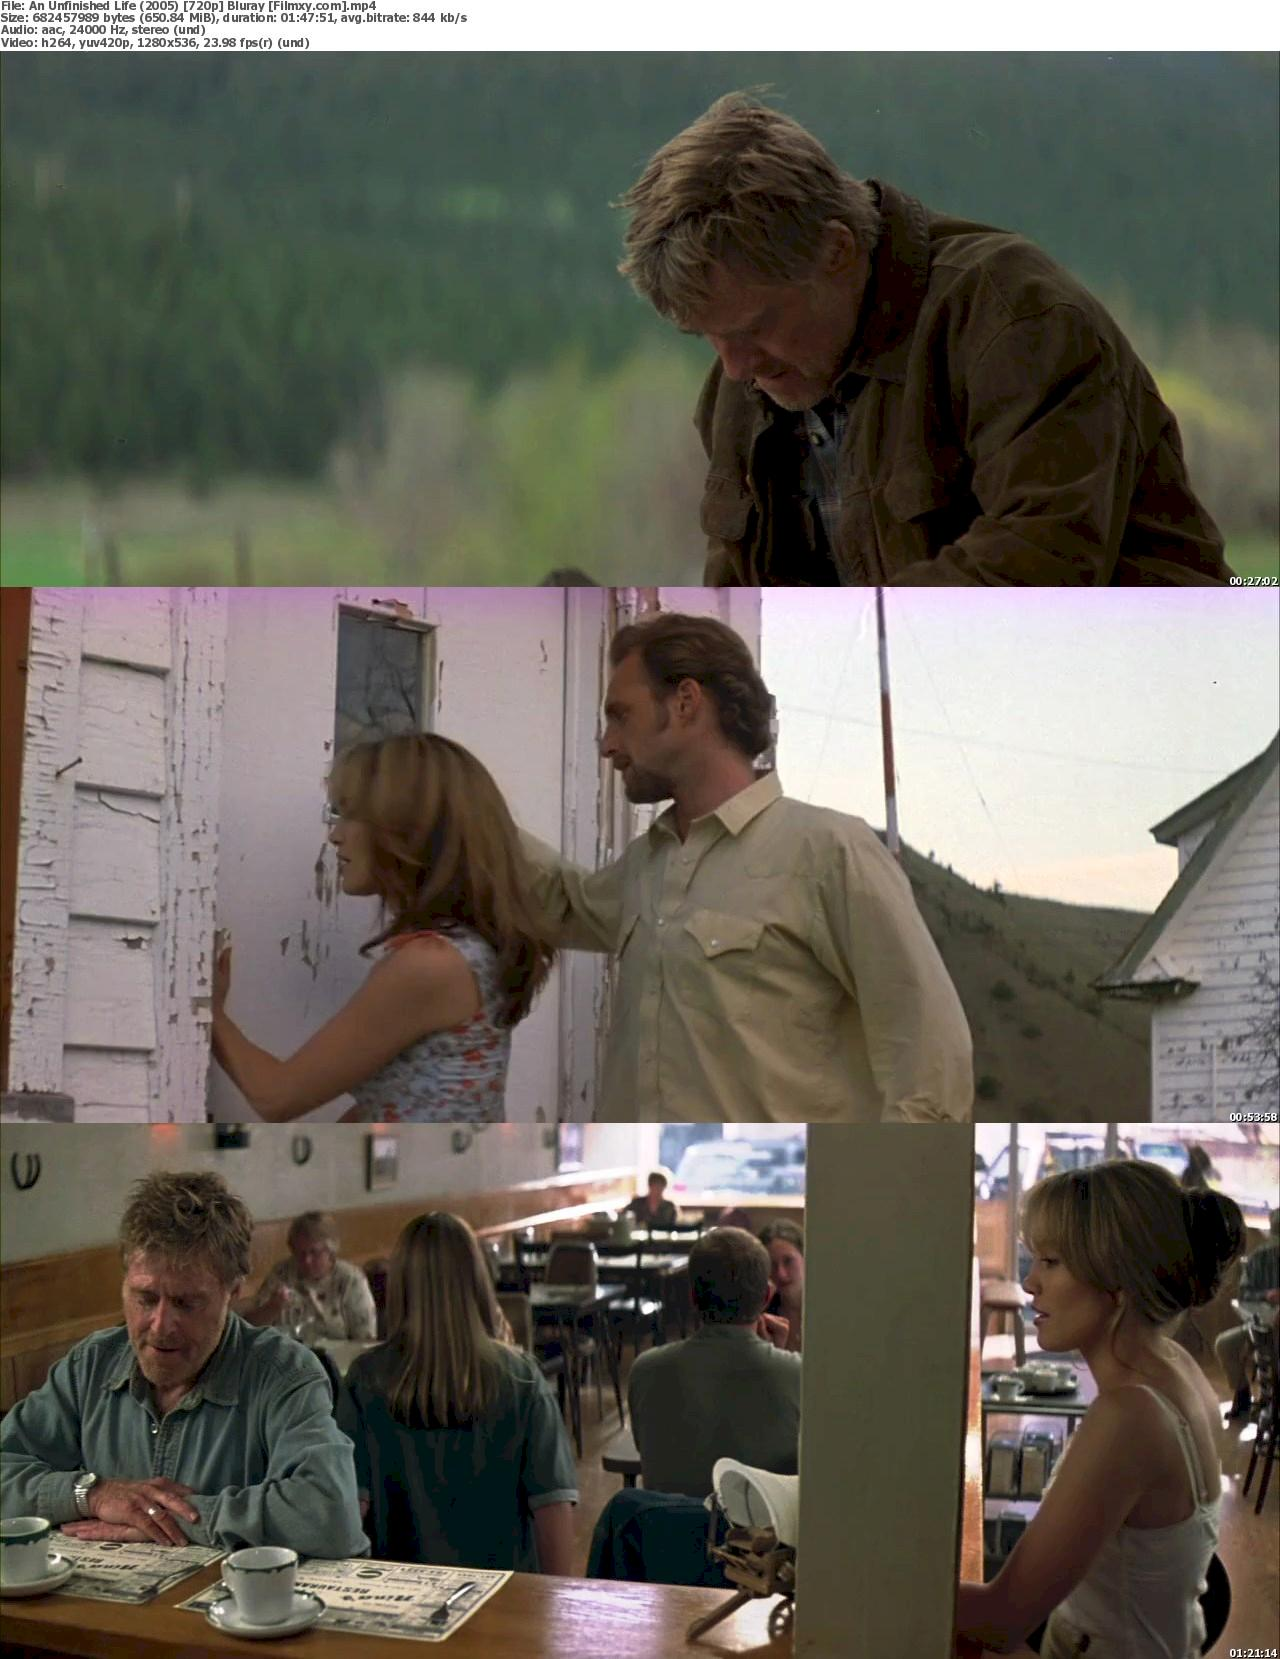 An Unfinished Life (2005) 720p & 1080p Bluray Free Download 720p Screenshot